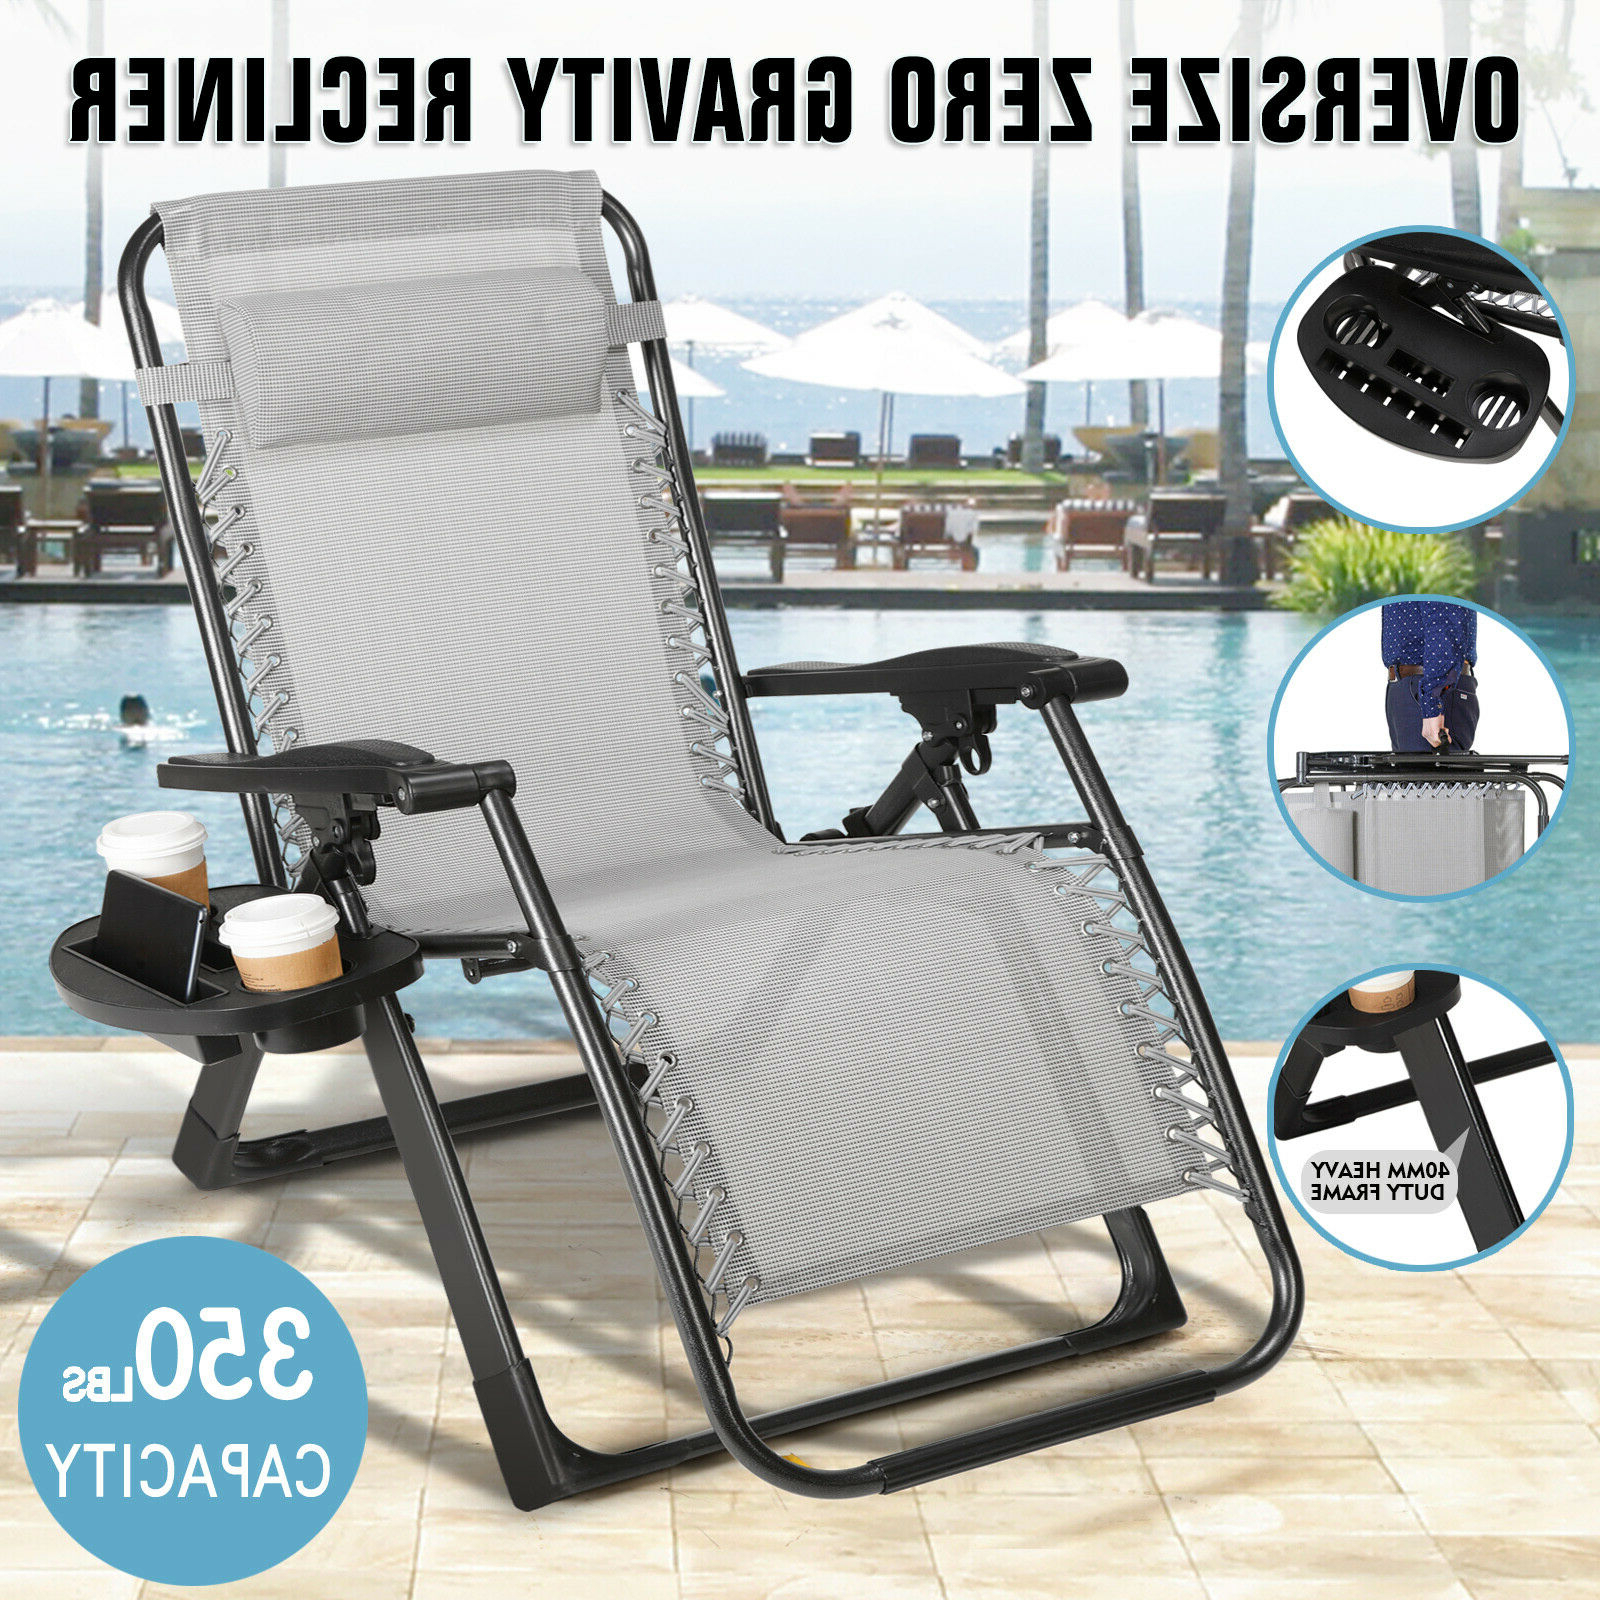 Most Recent Oversize Wider Armrest Padded Lounge Chairs With Folding Extra Wide Zero Gravity Chair Recliner Patio Pool Lounge Support 350lbs (View 13 of 25)